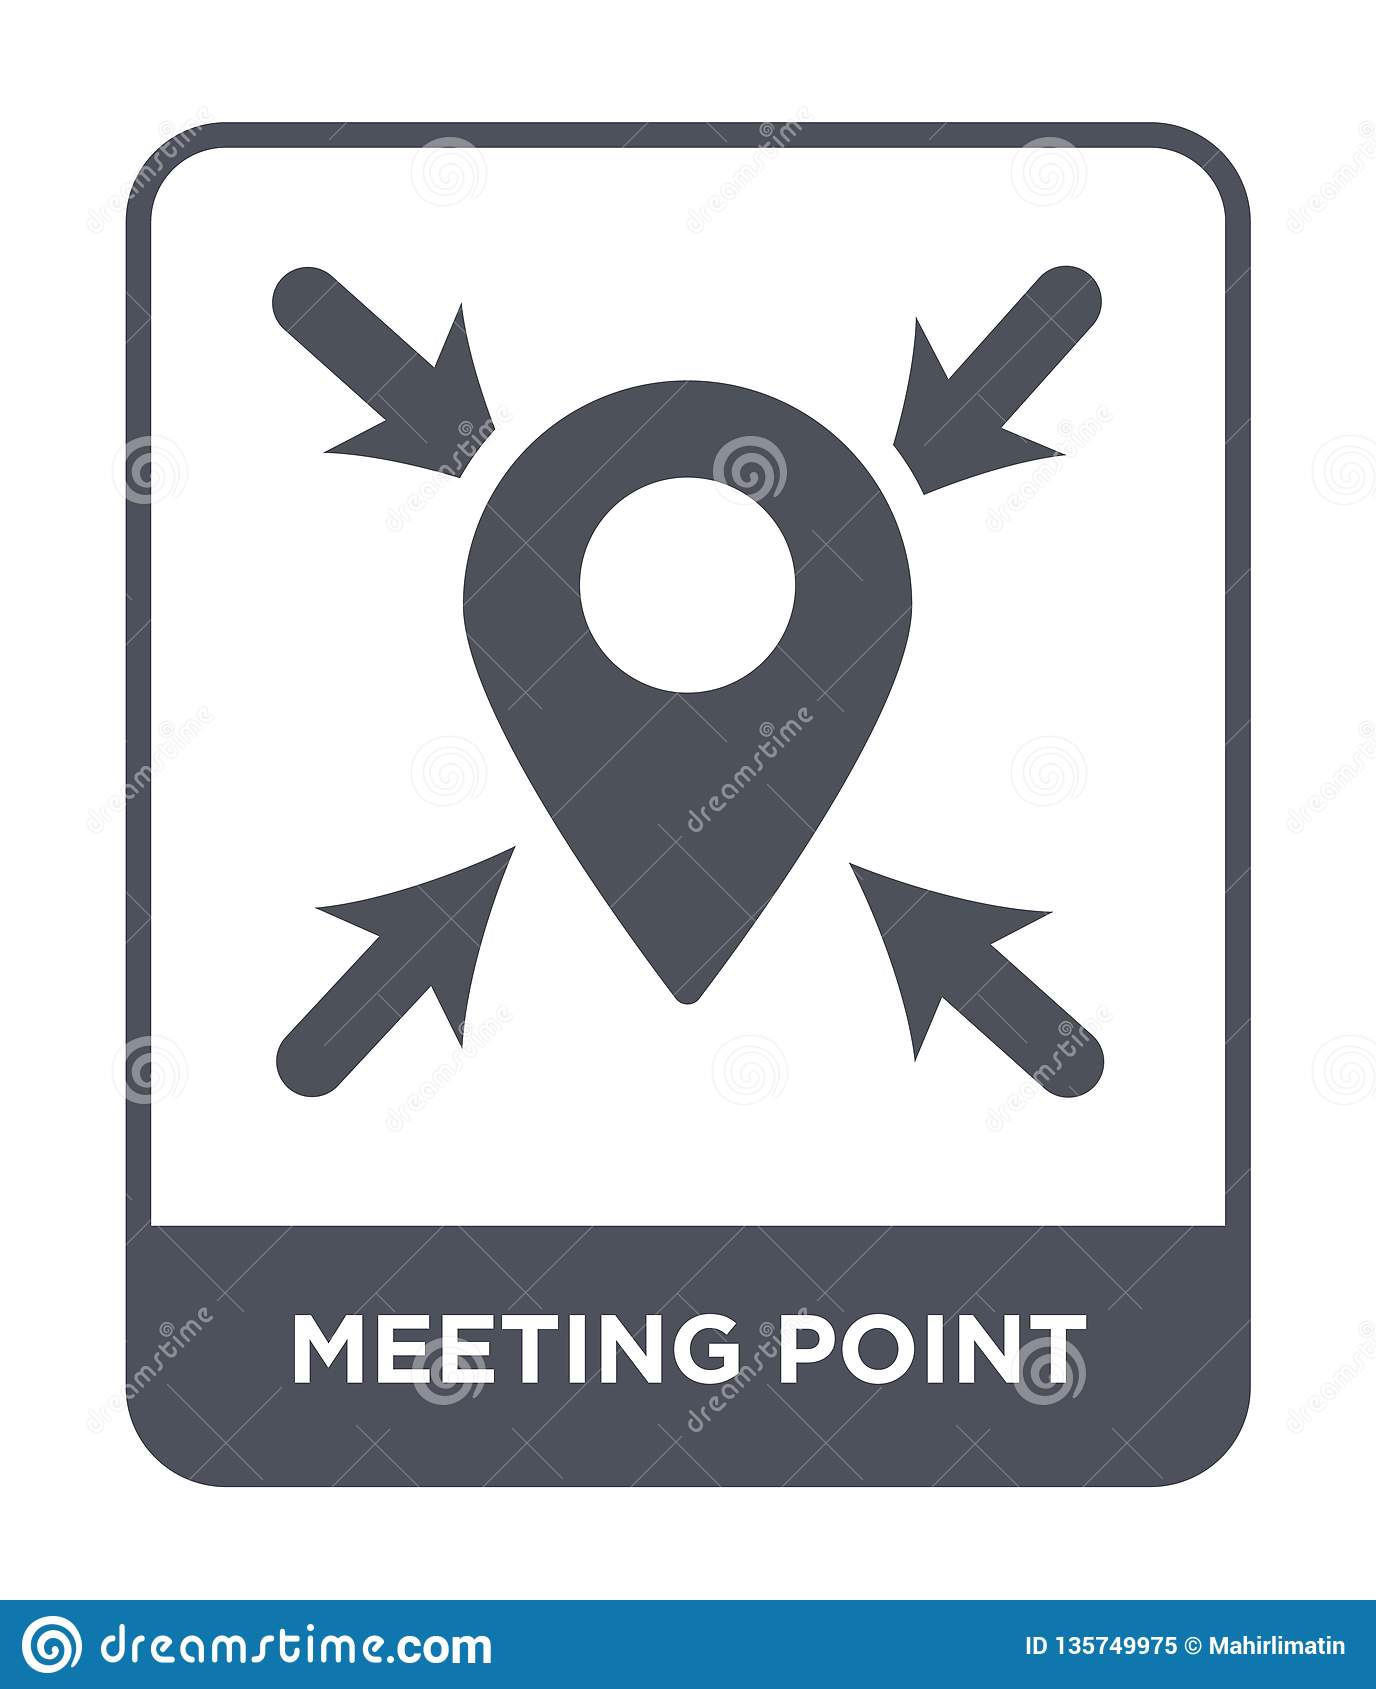 meeting point icon in trendy design style. meeting point icon isolated on white background. meeting point vector icon simple and